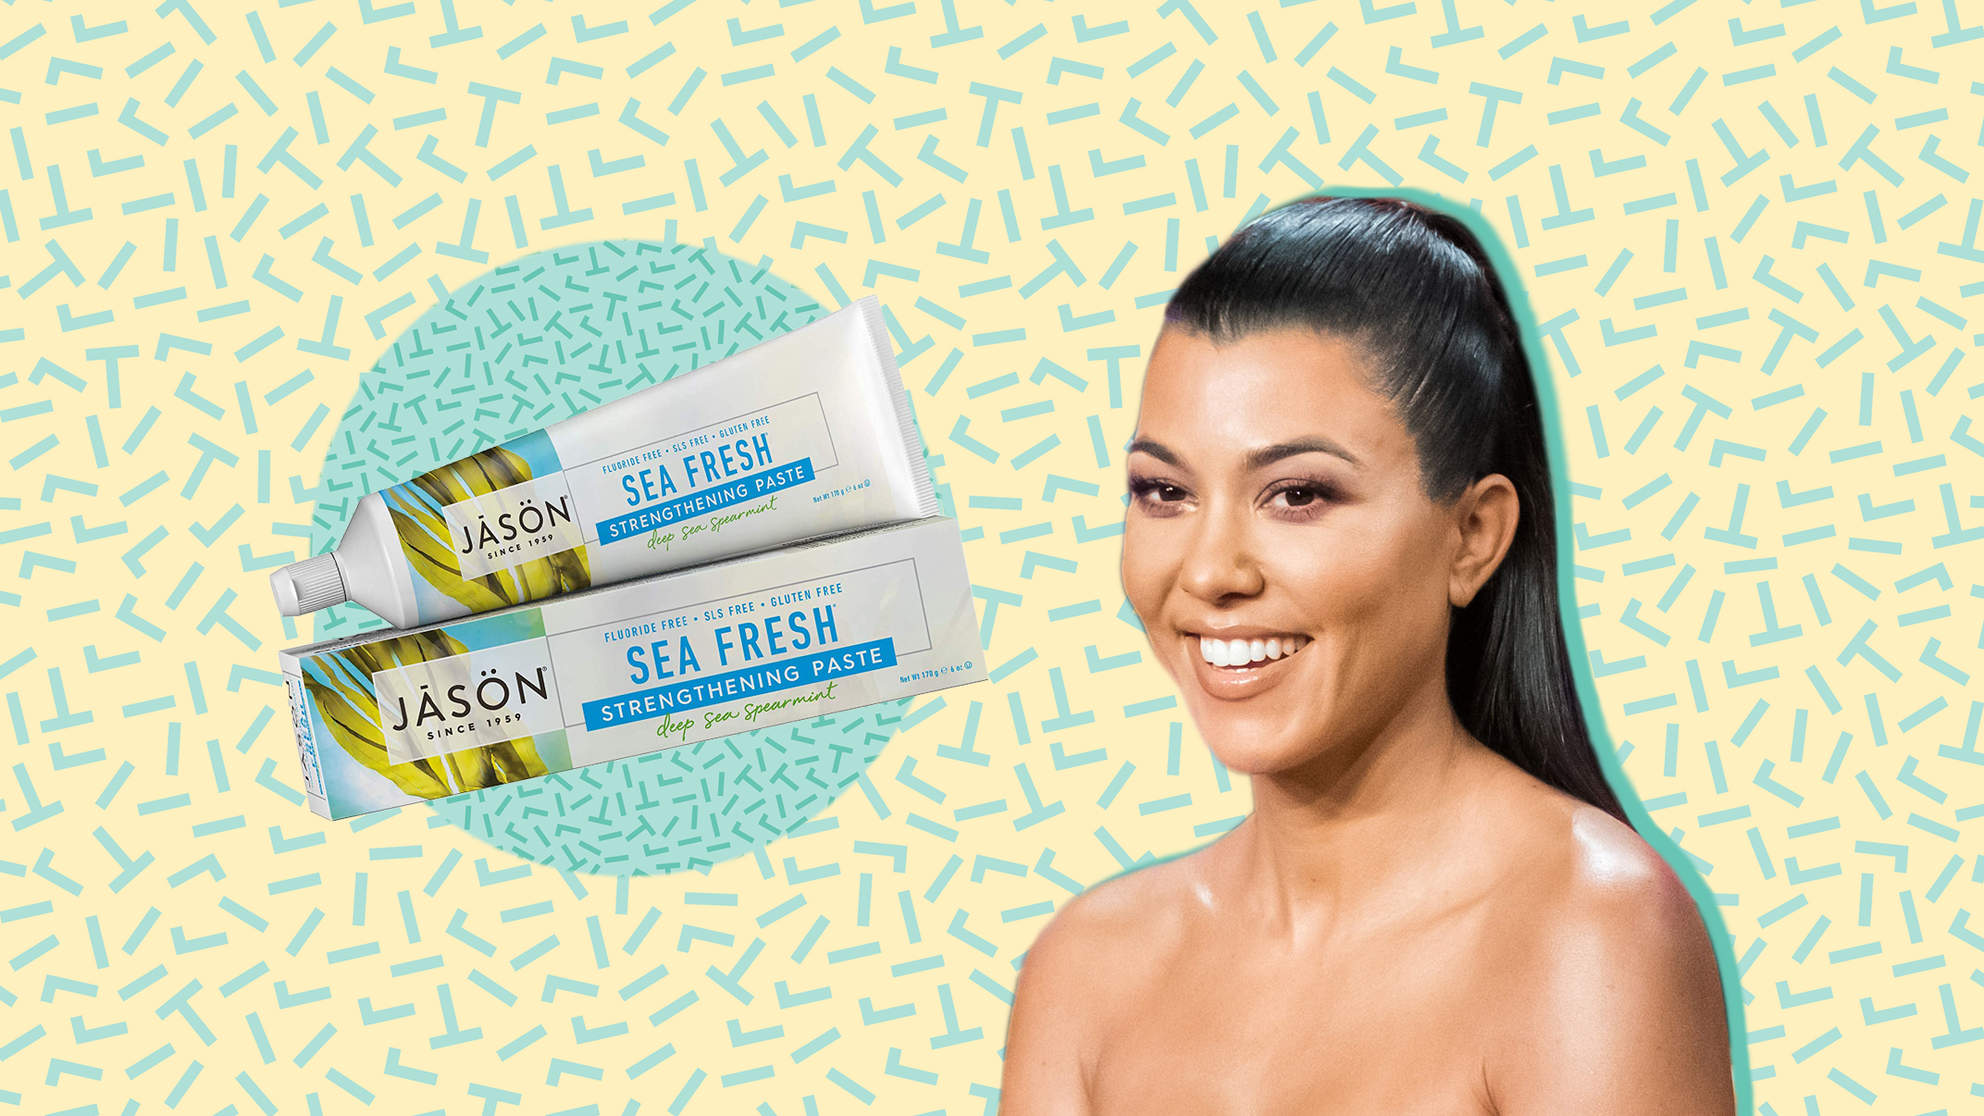 toothpaste natural woman health celebrity kourtney-kardashian teeth